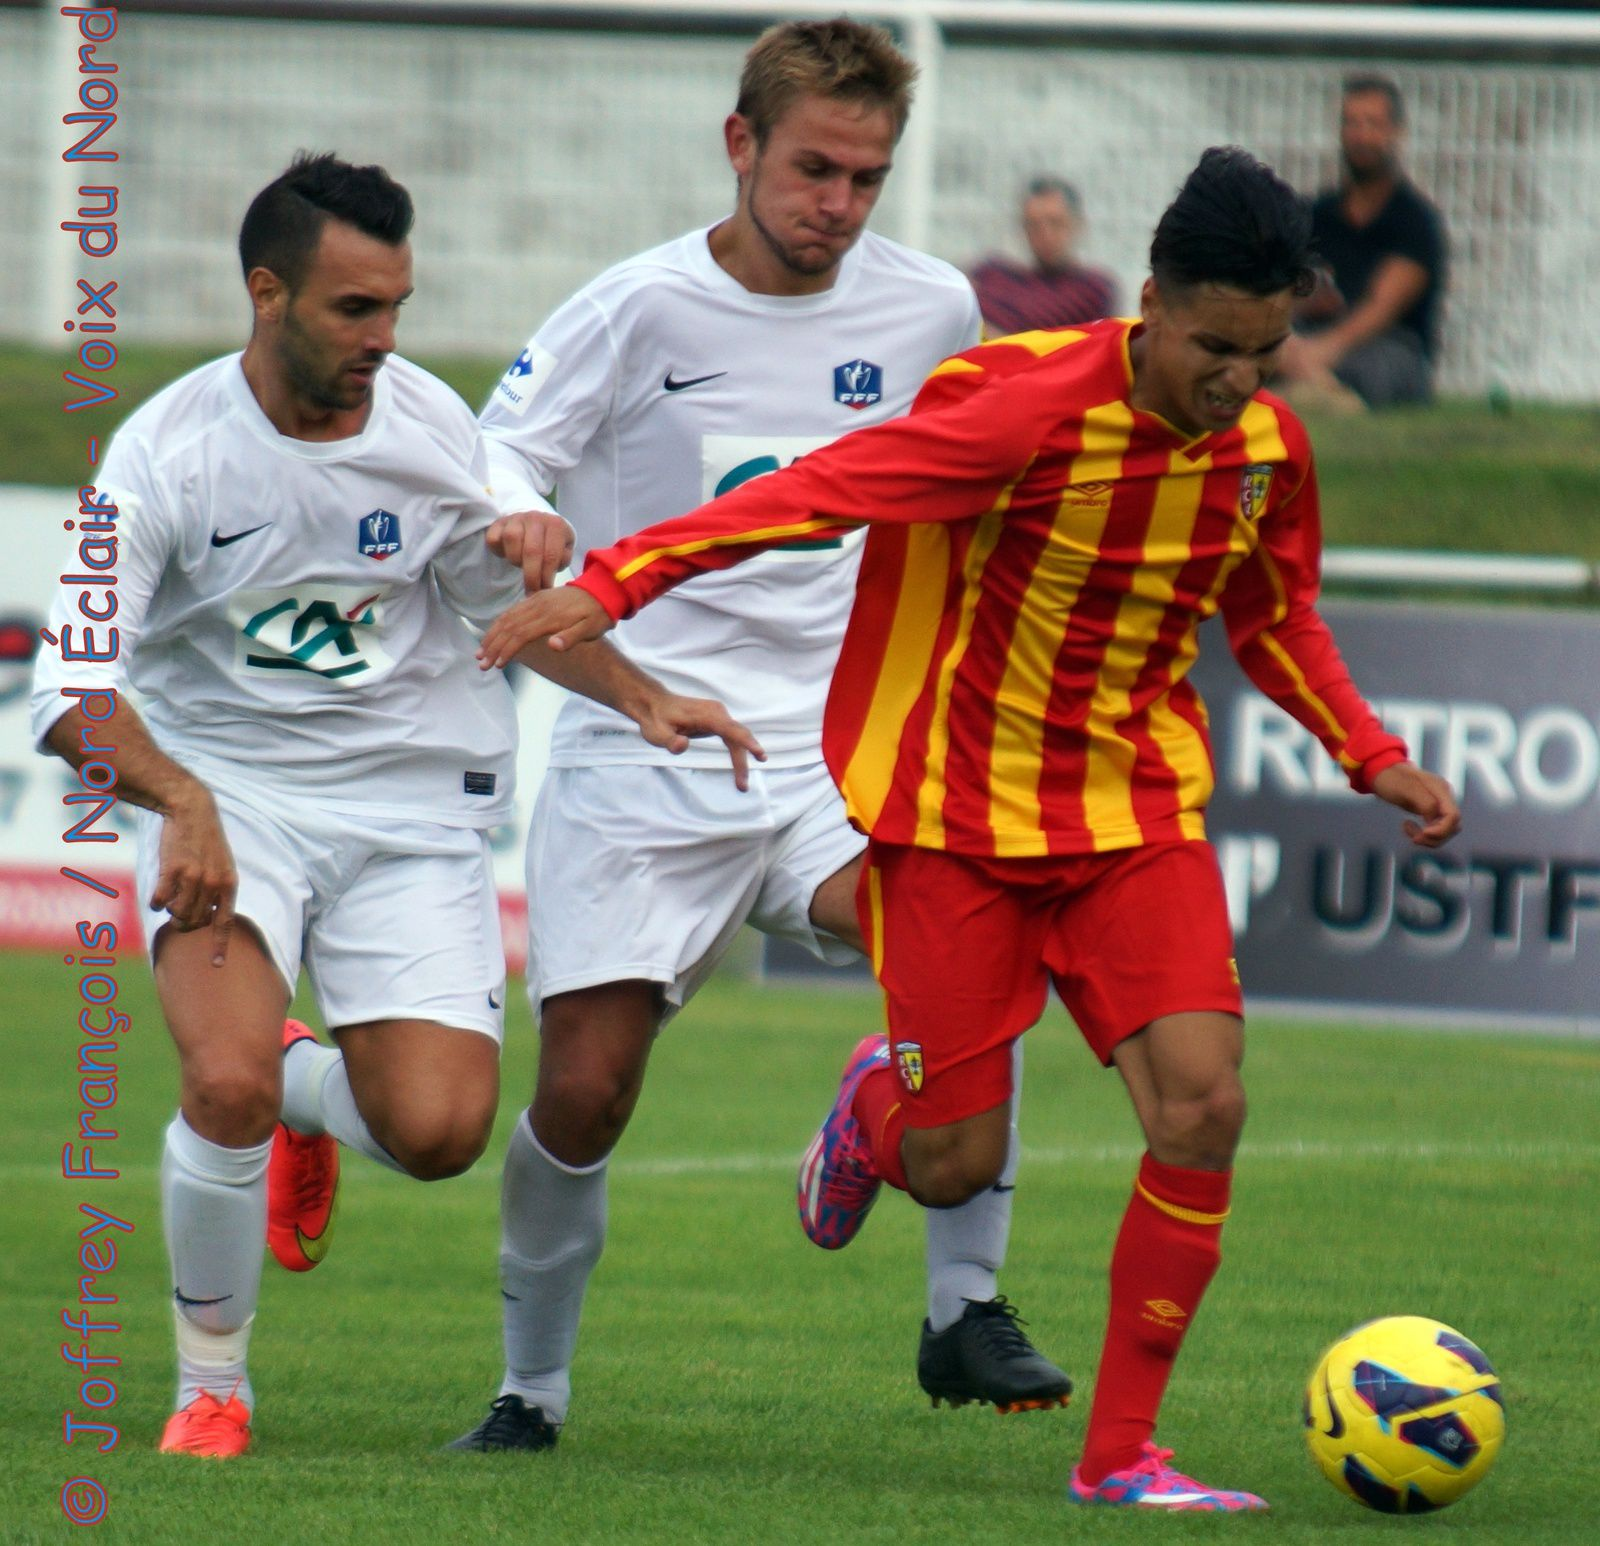 09.08.14 Tourcoing (CFA 2) - RC Lens (U19 Nat)